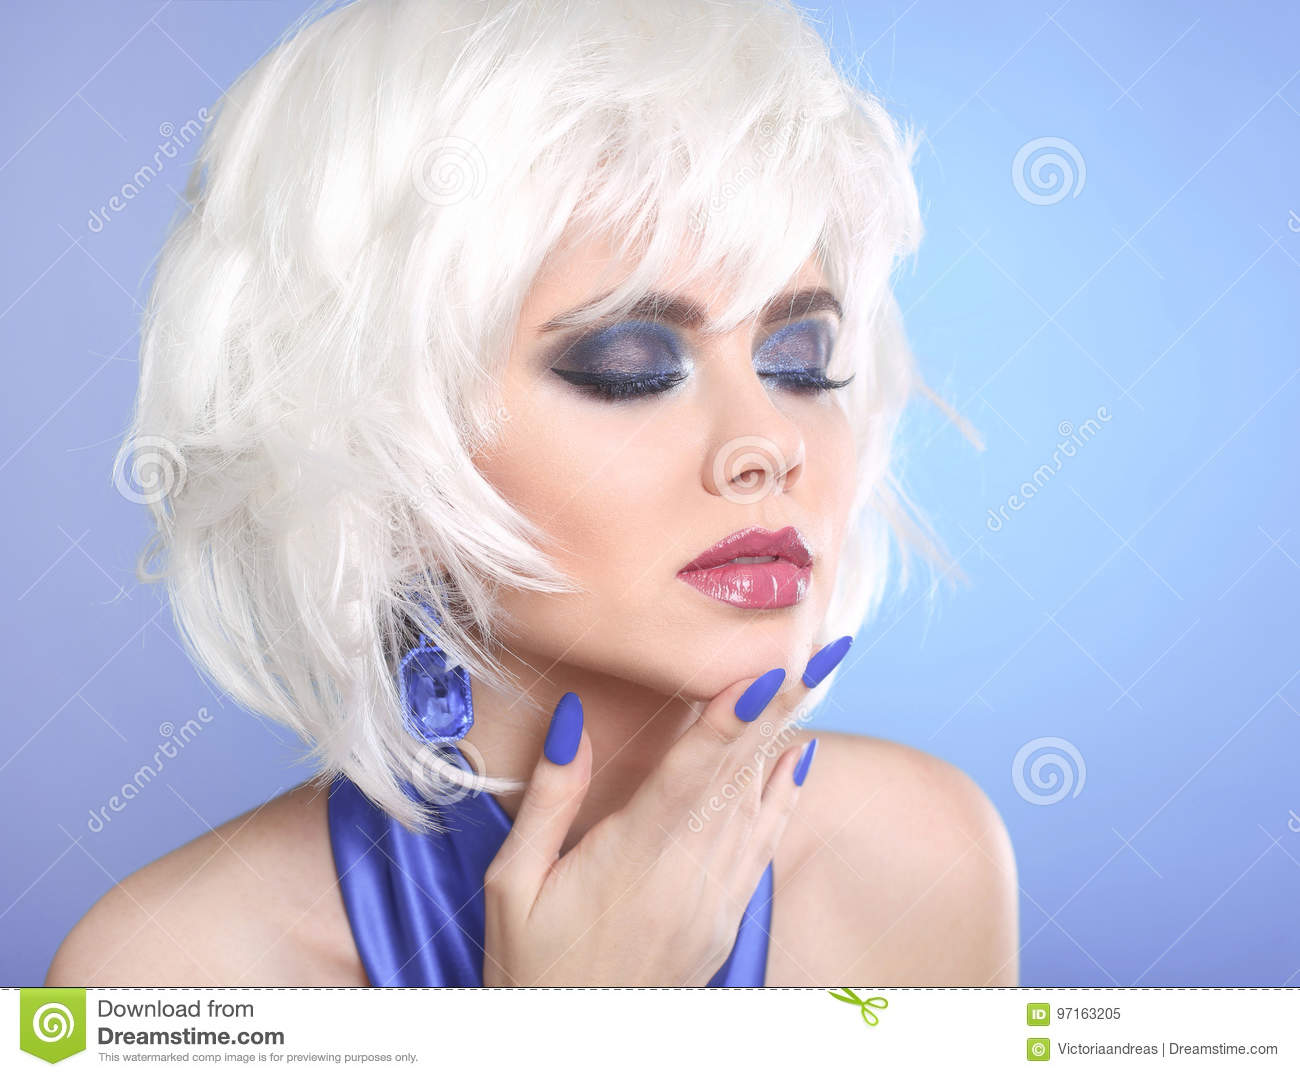 Beauty Makeup Portrait Woman White Hair Short Hairstyle Blue Stock Image Image Of Manicure Lady 97163205